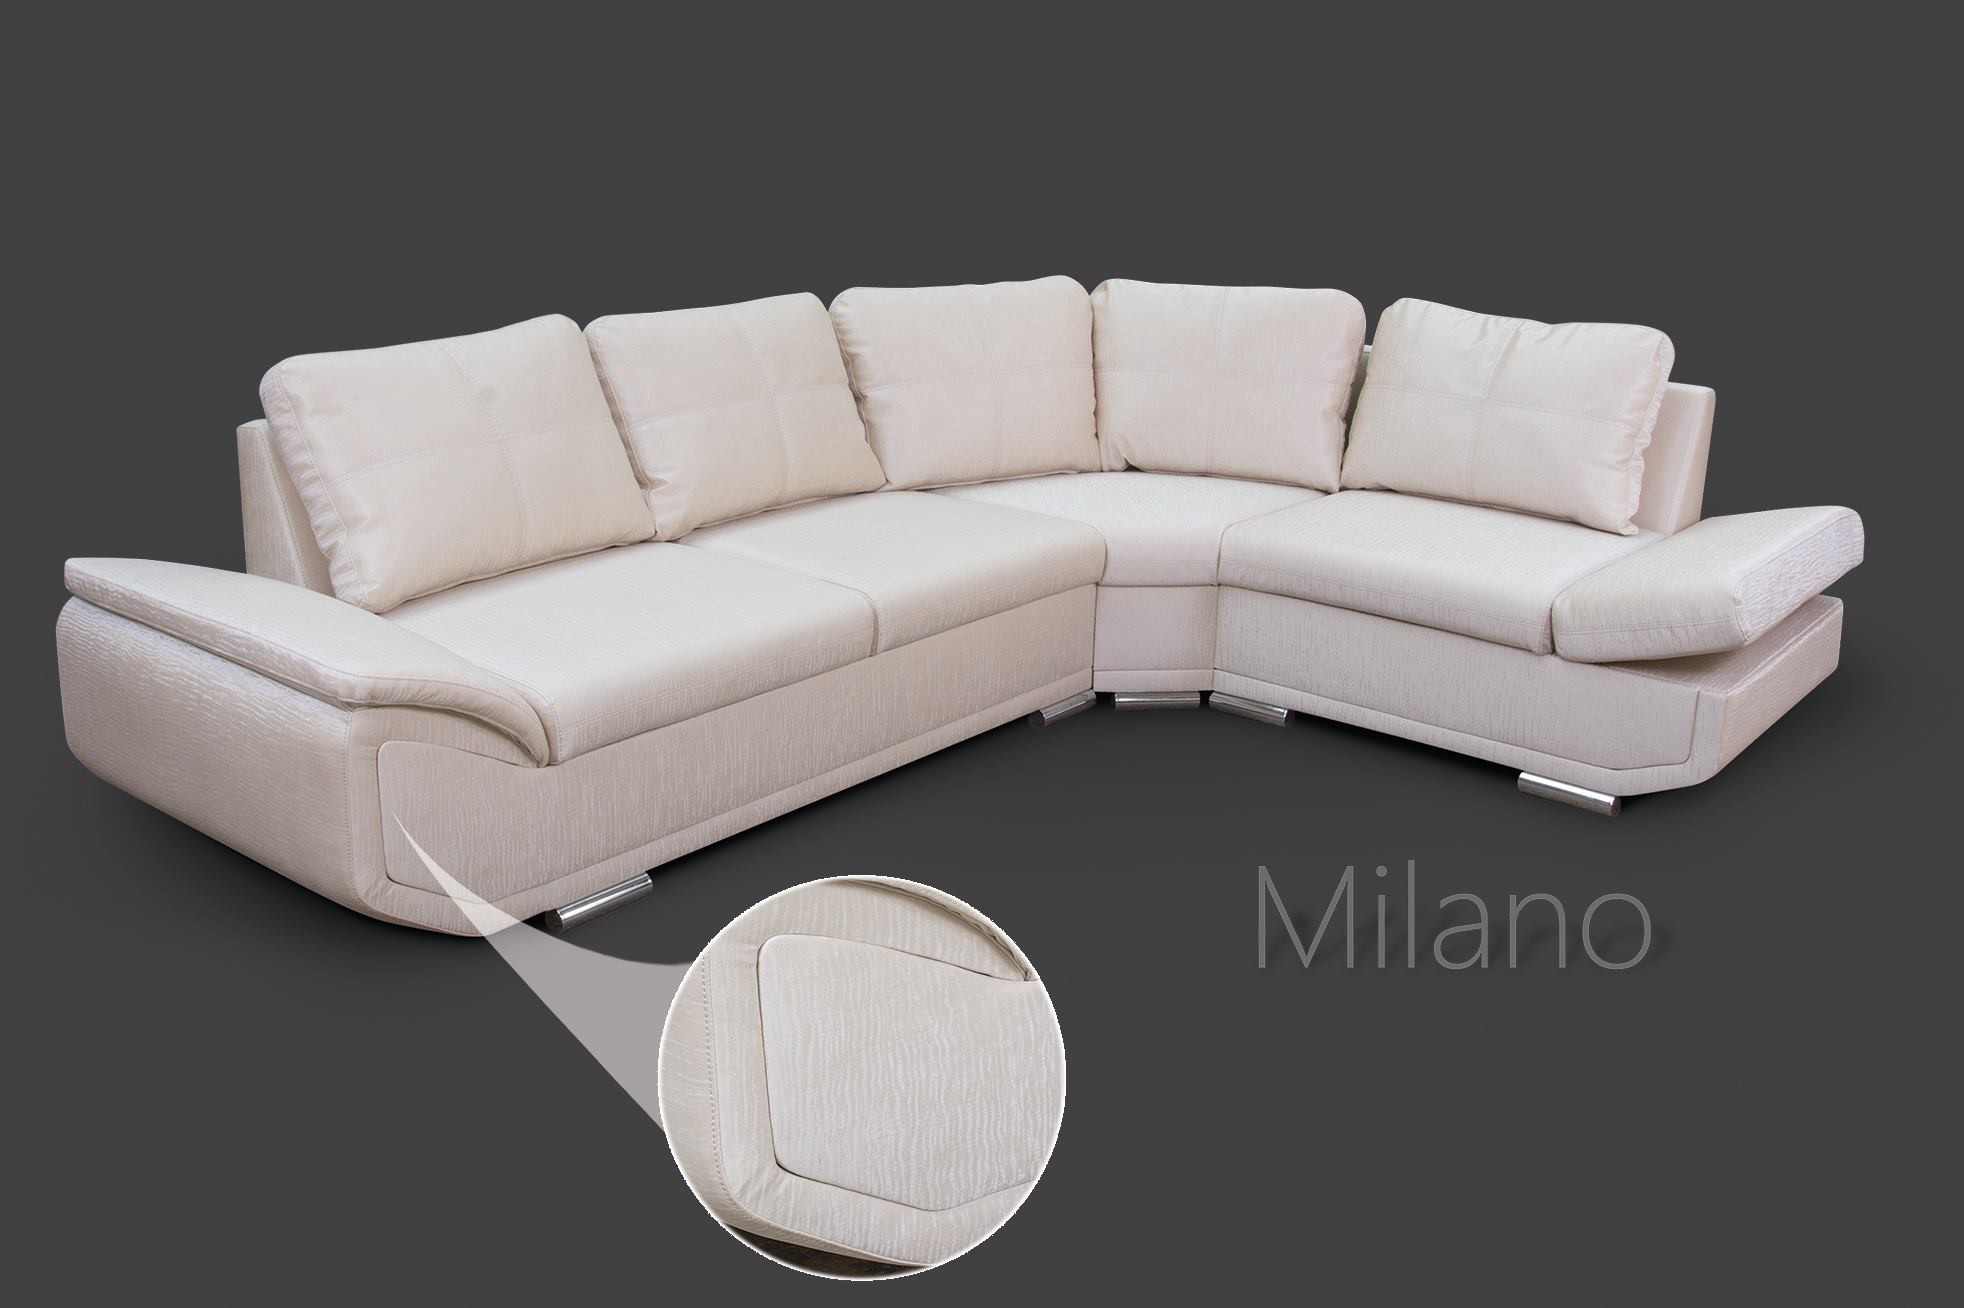 Coltar fix Milano